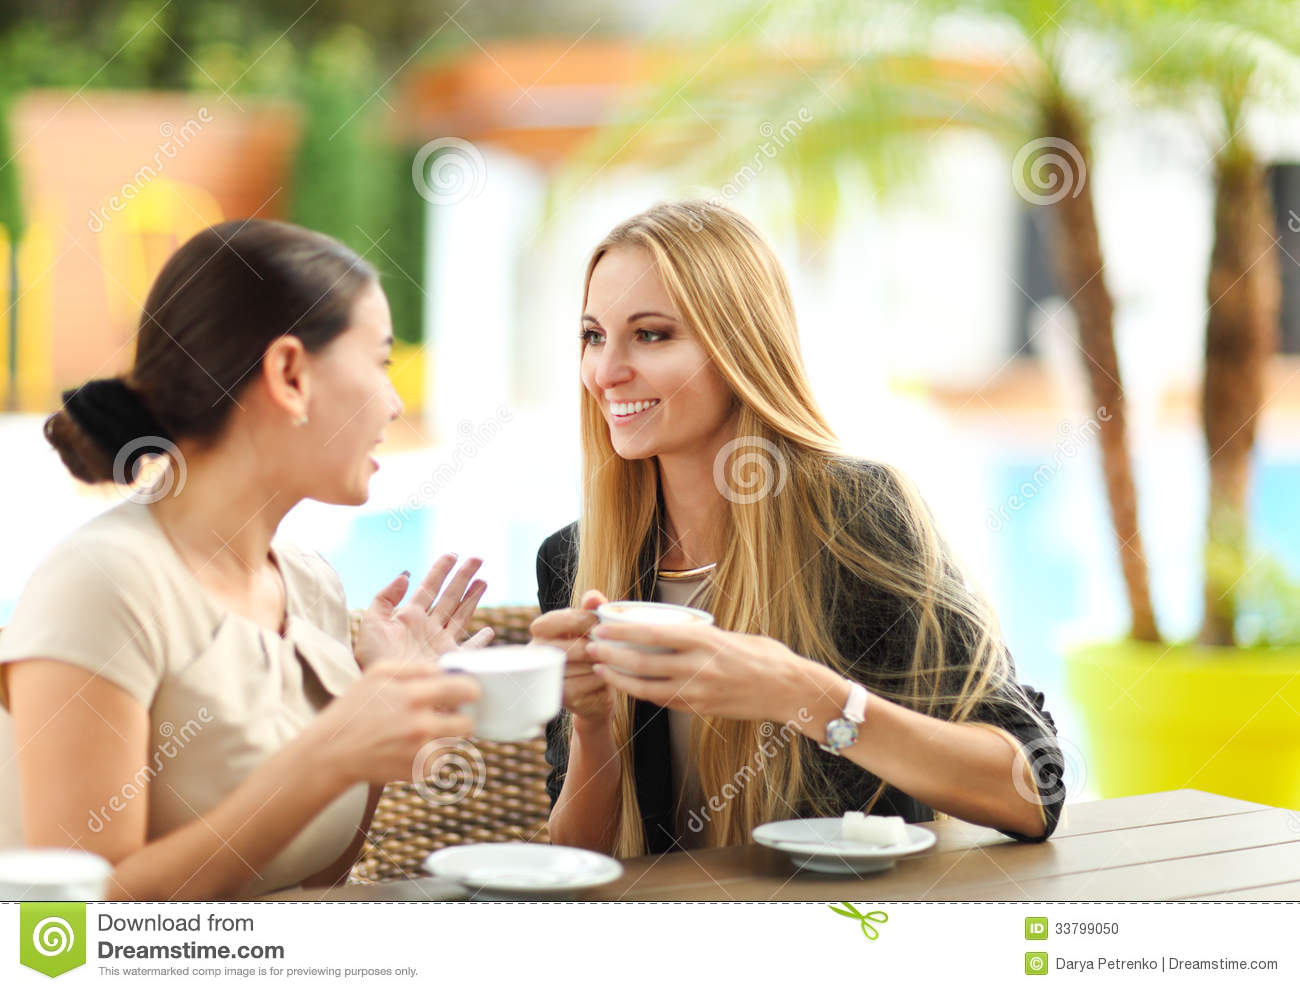 Young Women Drinking Coffee In A Cafe Outdoors Stock Photo ...